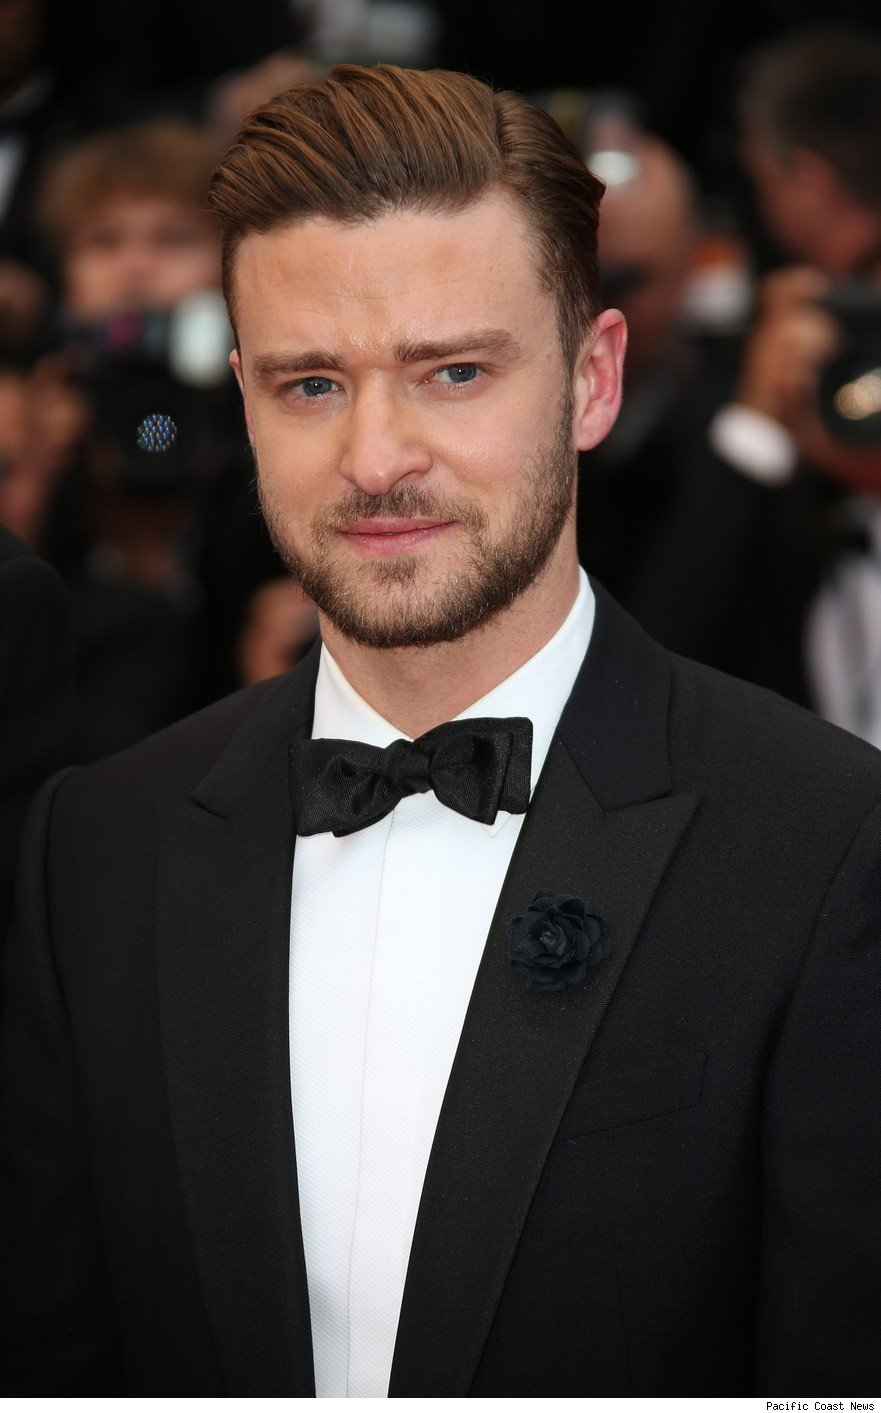 kanye west hairstyle : Justin Timberlake Hairstyle 2013 Name www.galleryhip.com - The ...